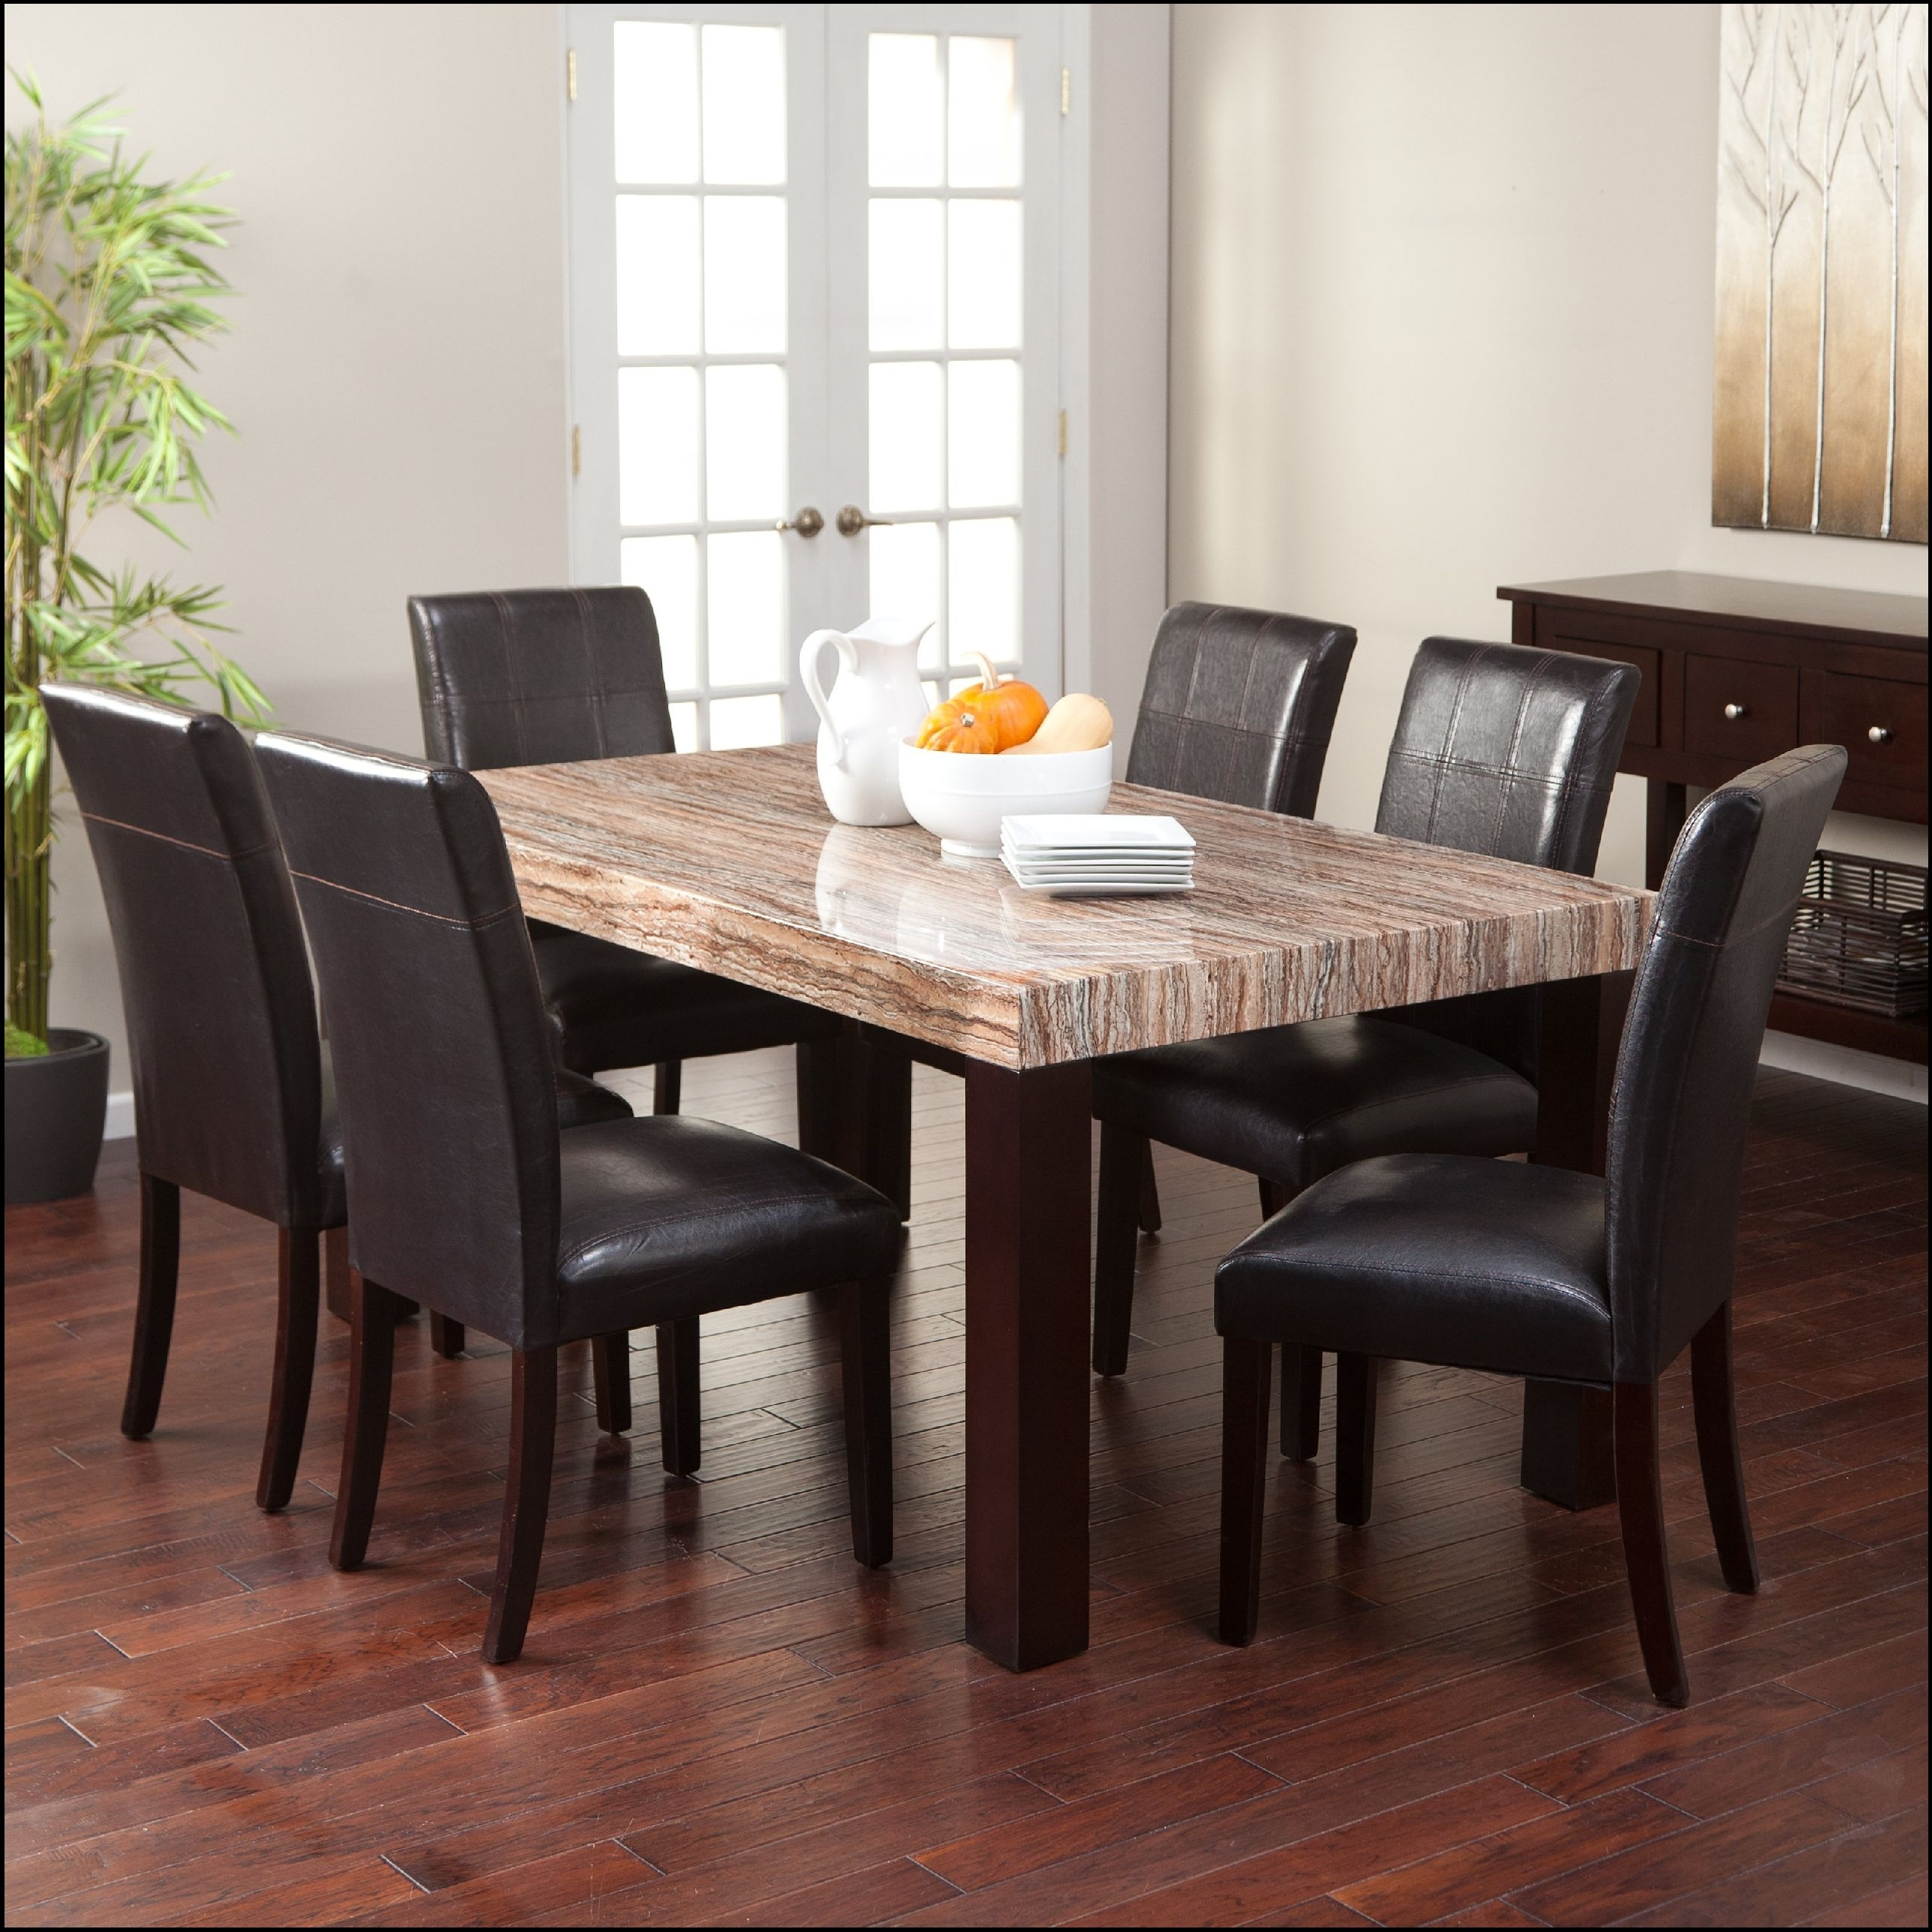 Palazzo Rectangle Dining Tables Pertaining To 2018 Great Finley Home Palazzo 6 Piece Dining Set With Bench With Looking (View 14 of 25)